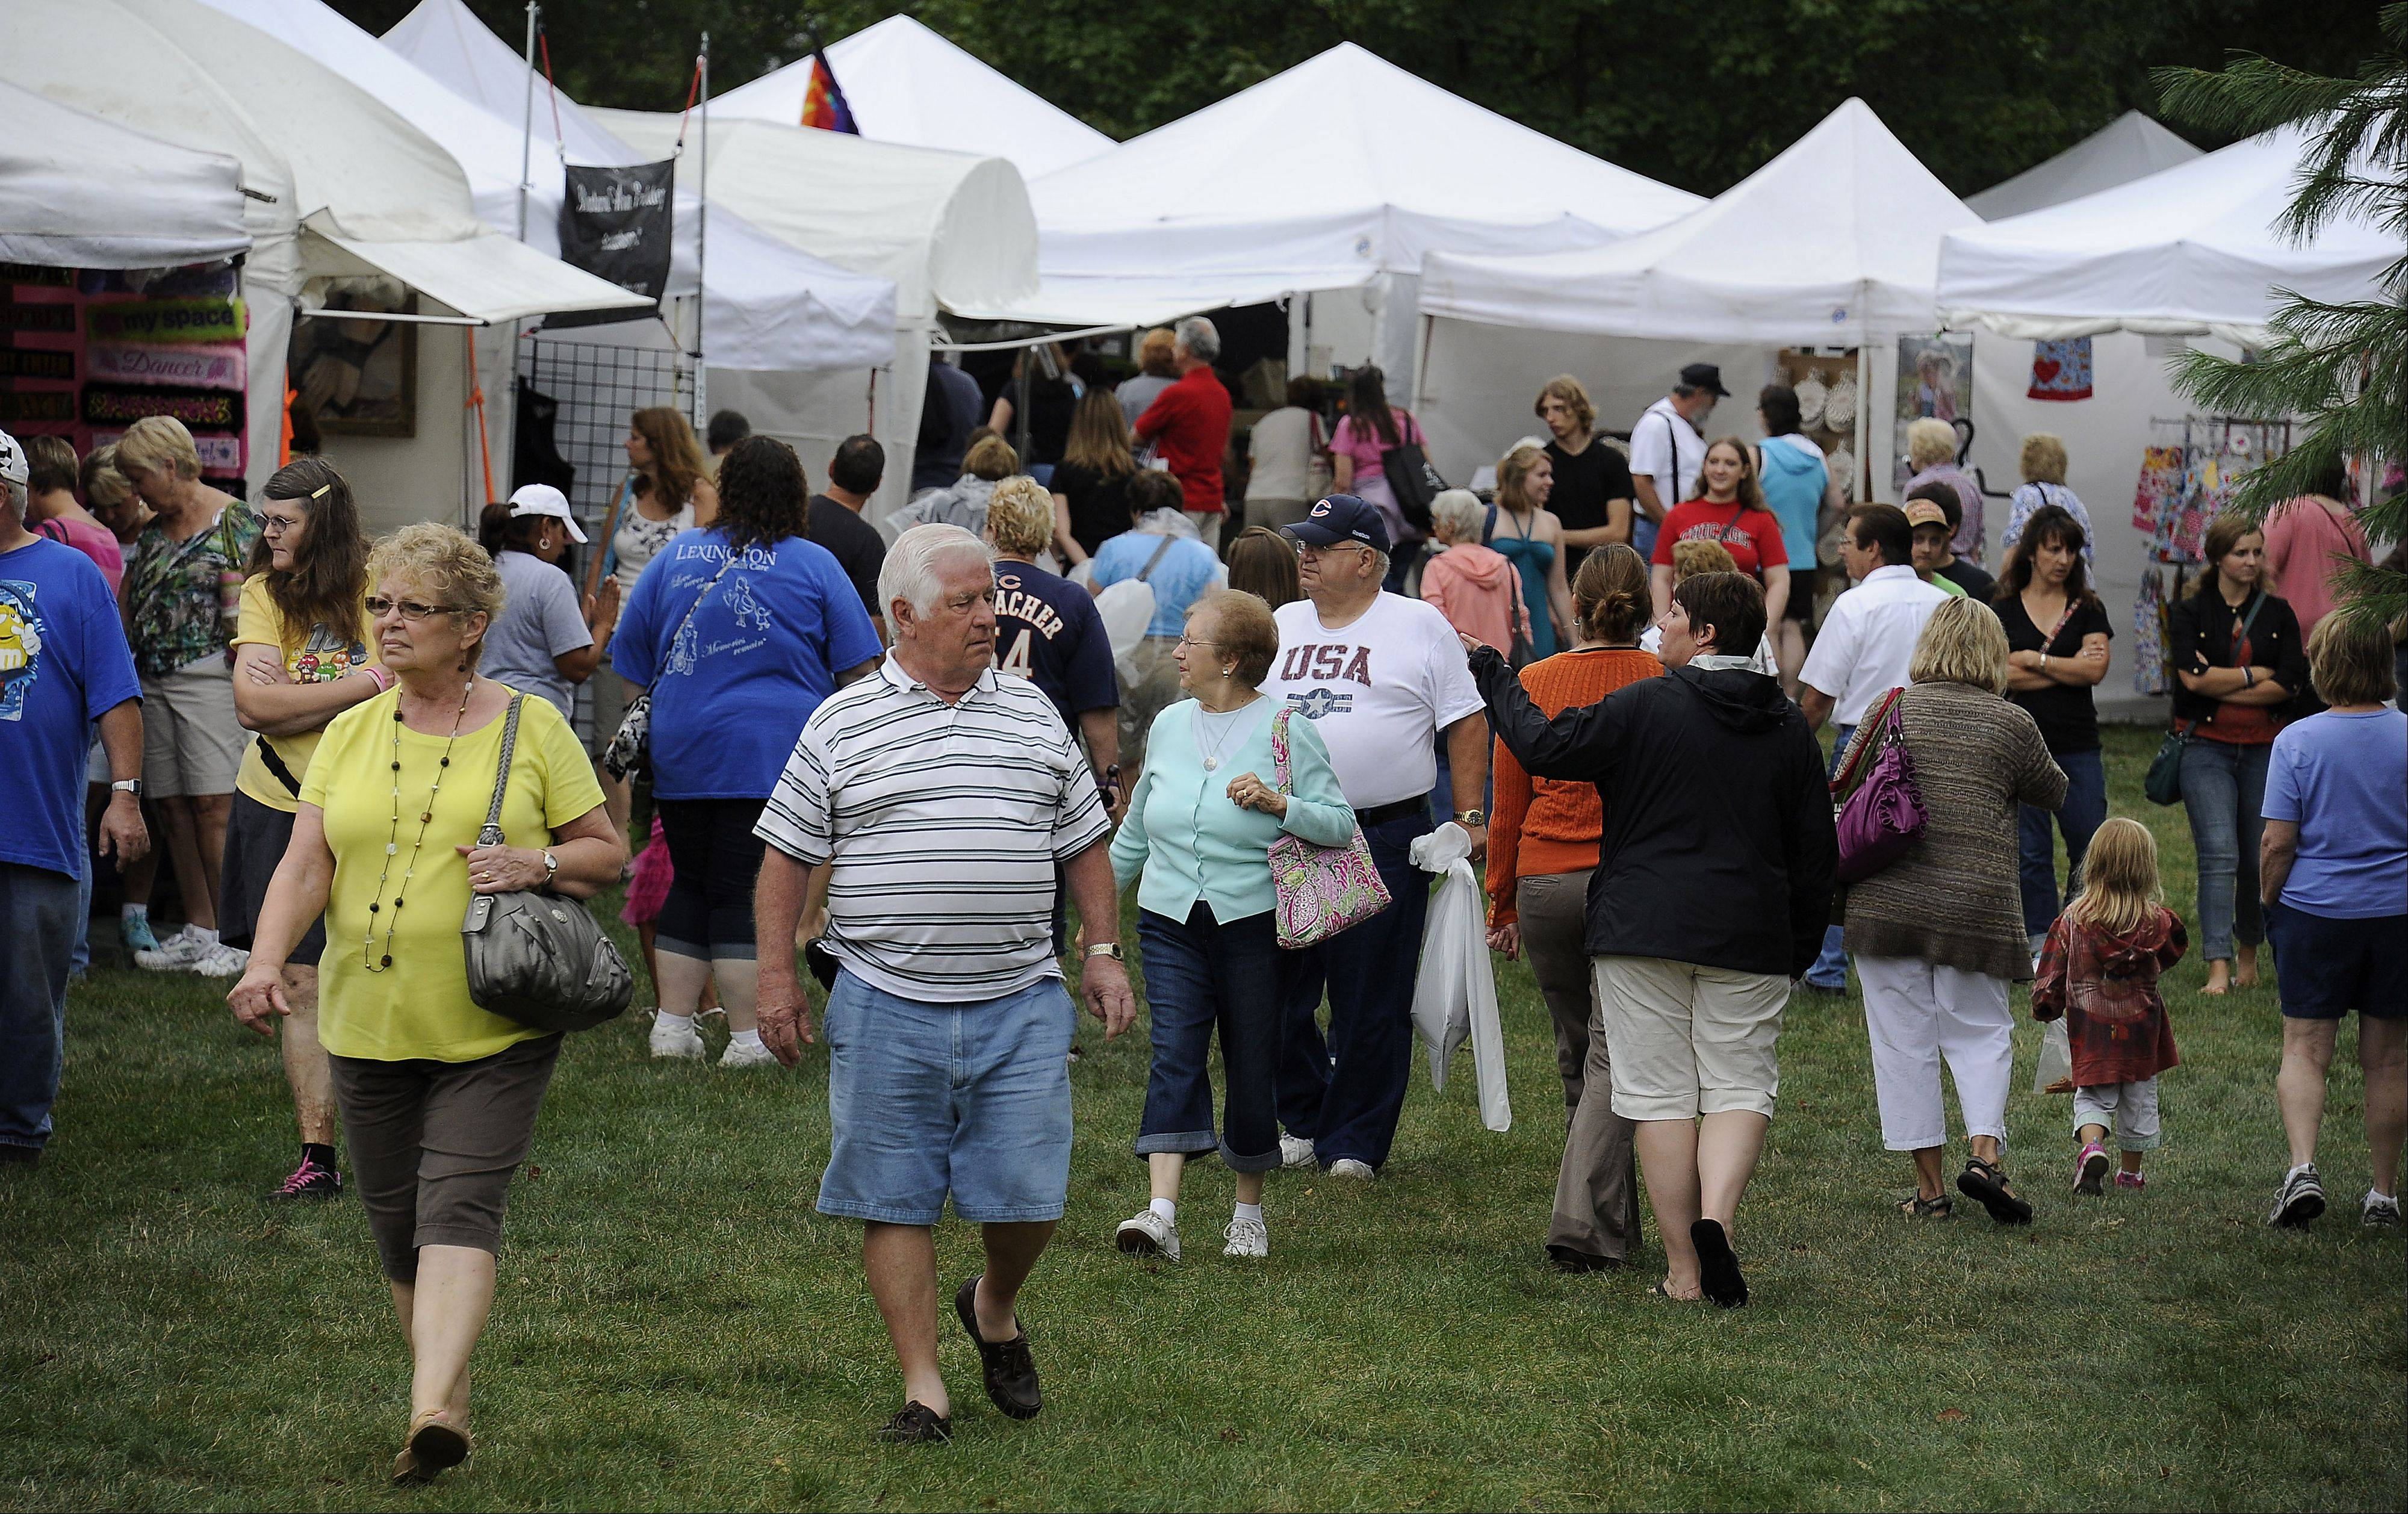 Despite the rain, large crowds decend on Septemberfest in Schaumburg on Saturday.